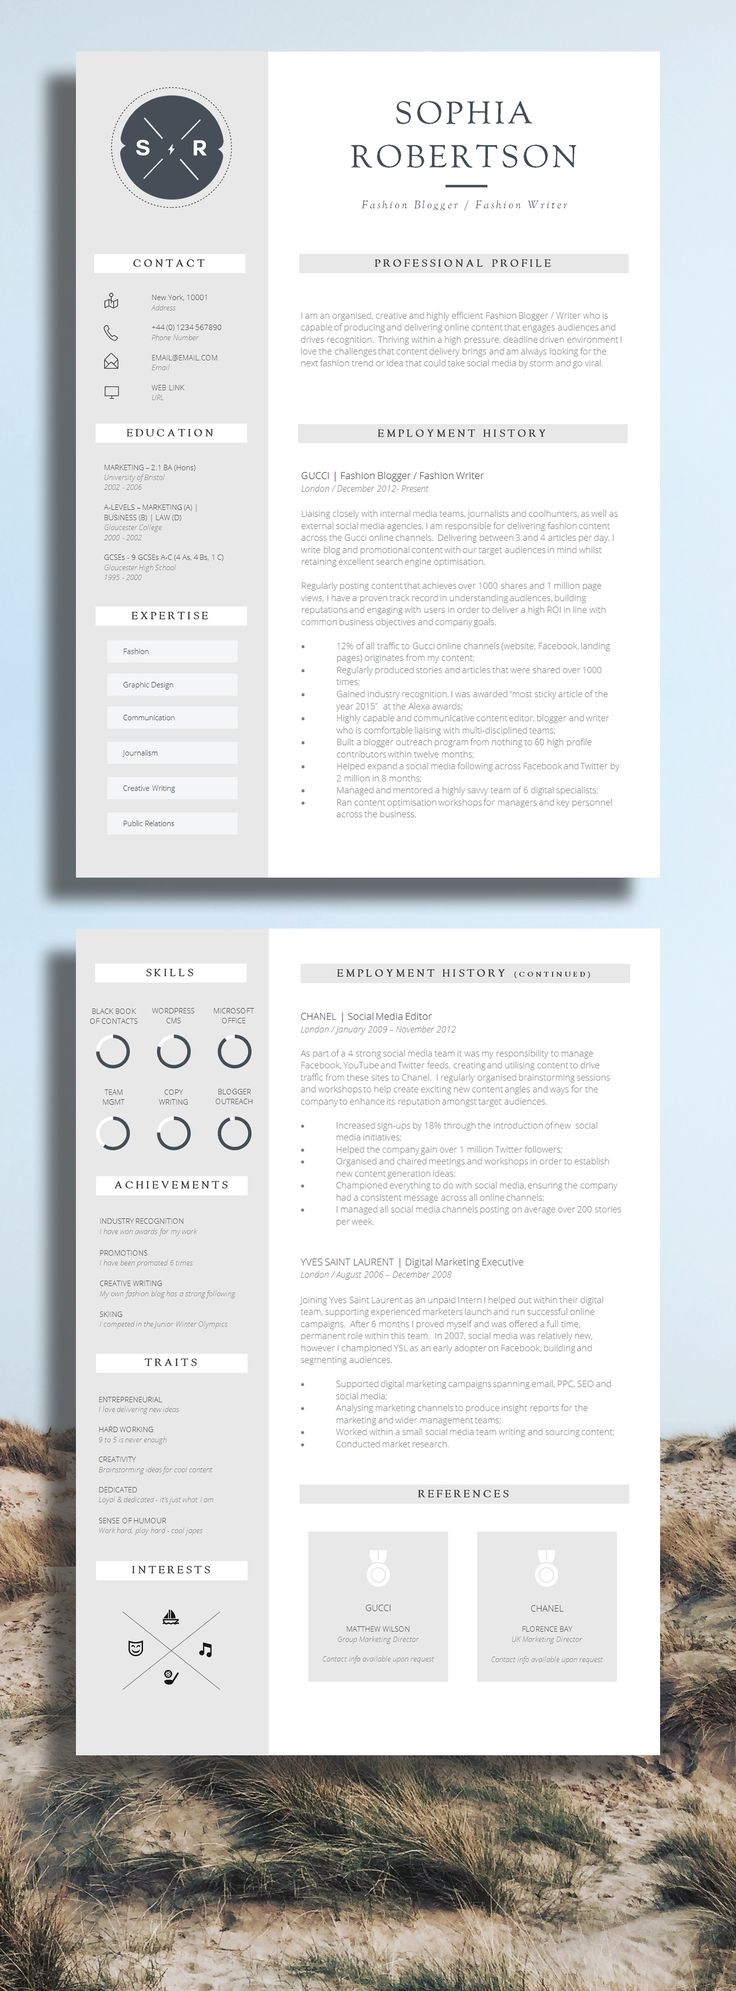 638 best Resume images on Pinterest | Resume templates, Resume and ...